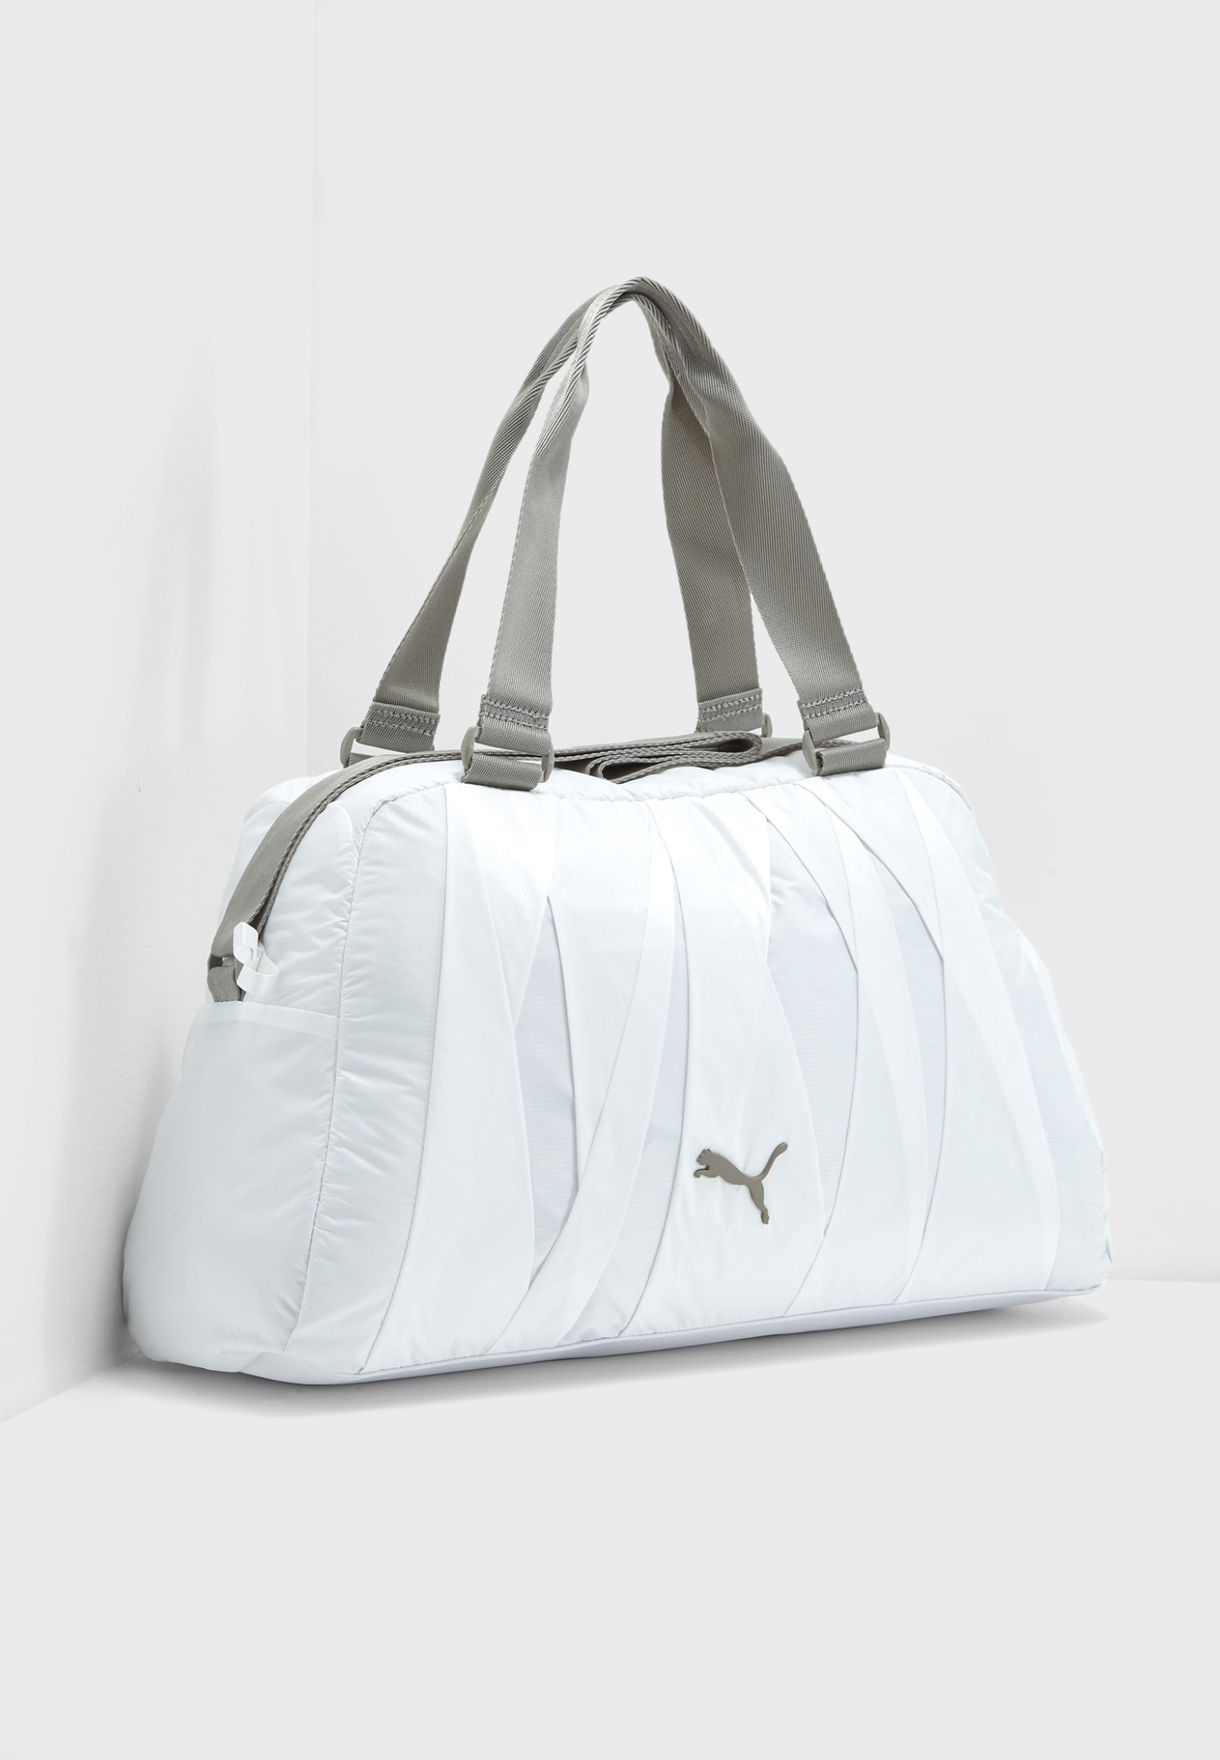 e1107385bfd Shop PUMA white En Pointe Duffle Bag 07527601 for Women in Qatar -  PU020AC10HRT